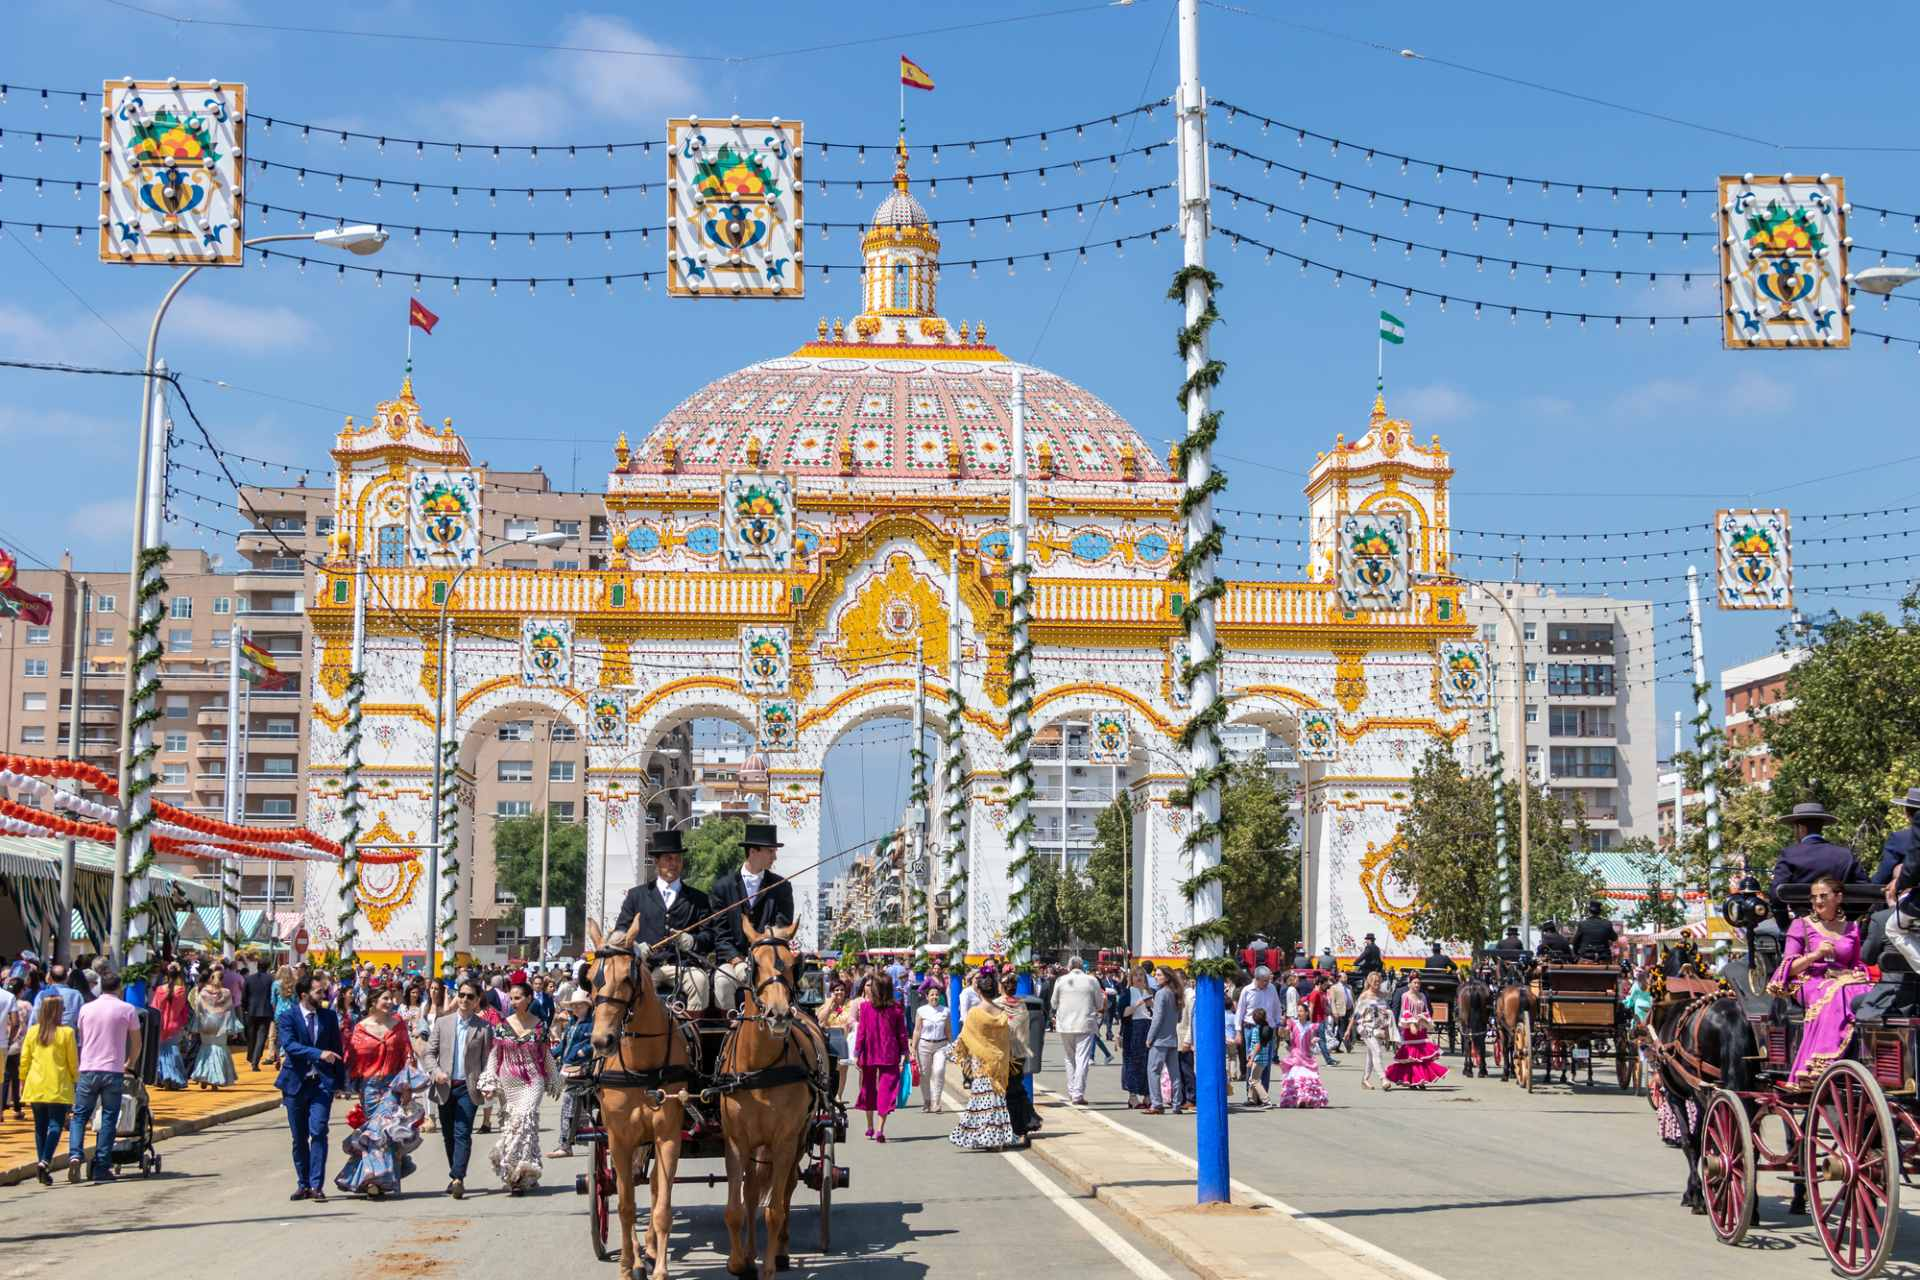 feria-de-abril-april-spring-fair-free-things-to-do-in-seville